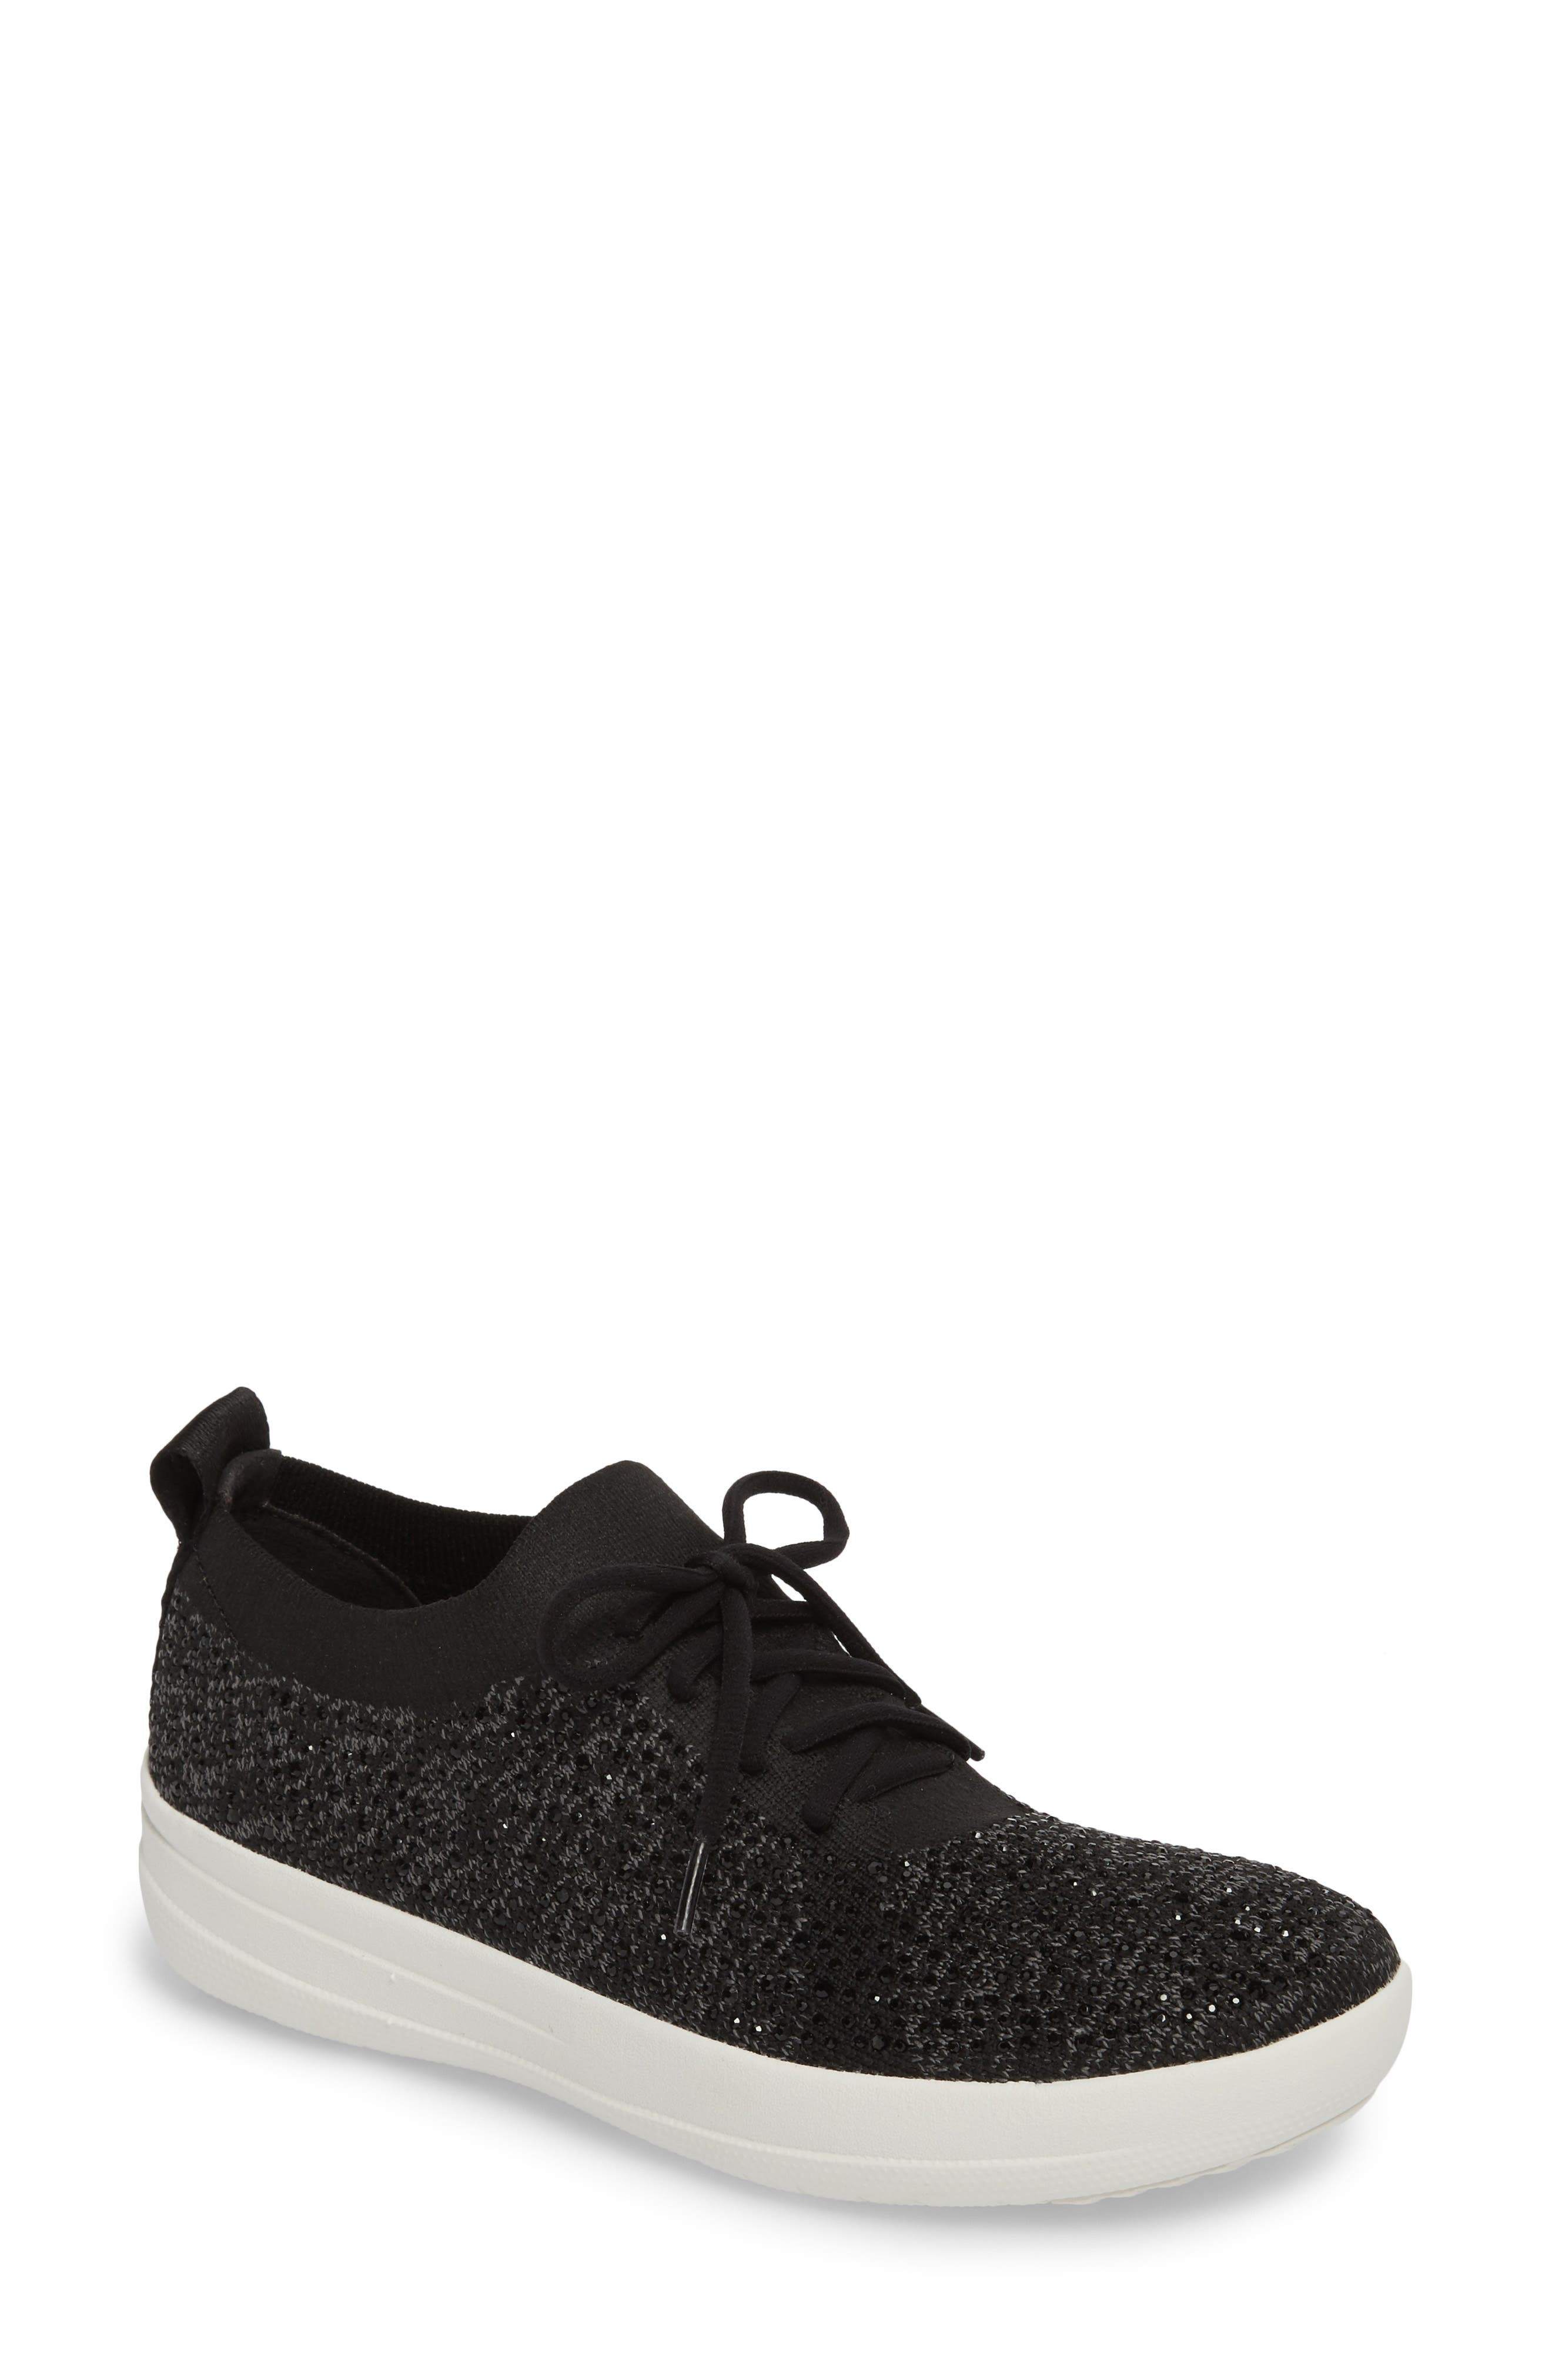 FITFLOP, Uberknit<sup>™</sup> F-Sporty Sneaker, Main thumbnail 1, color, 001